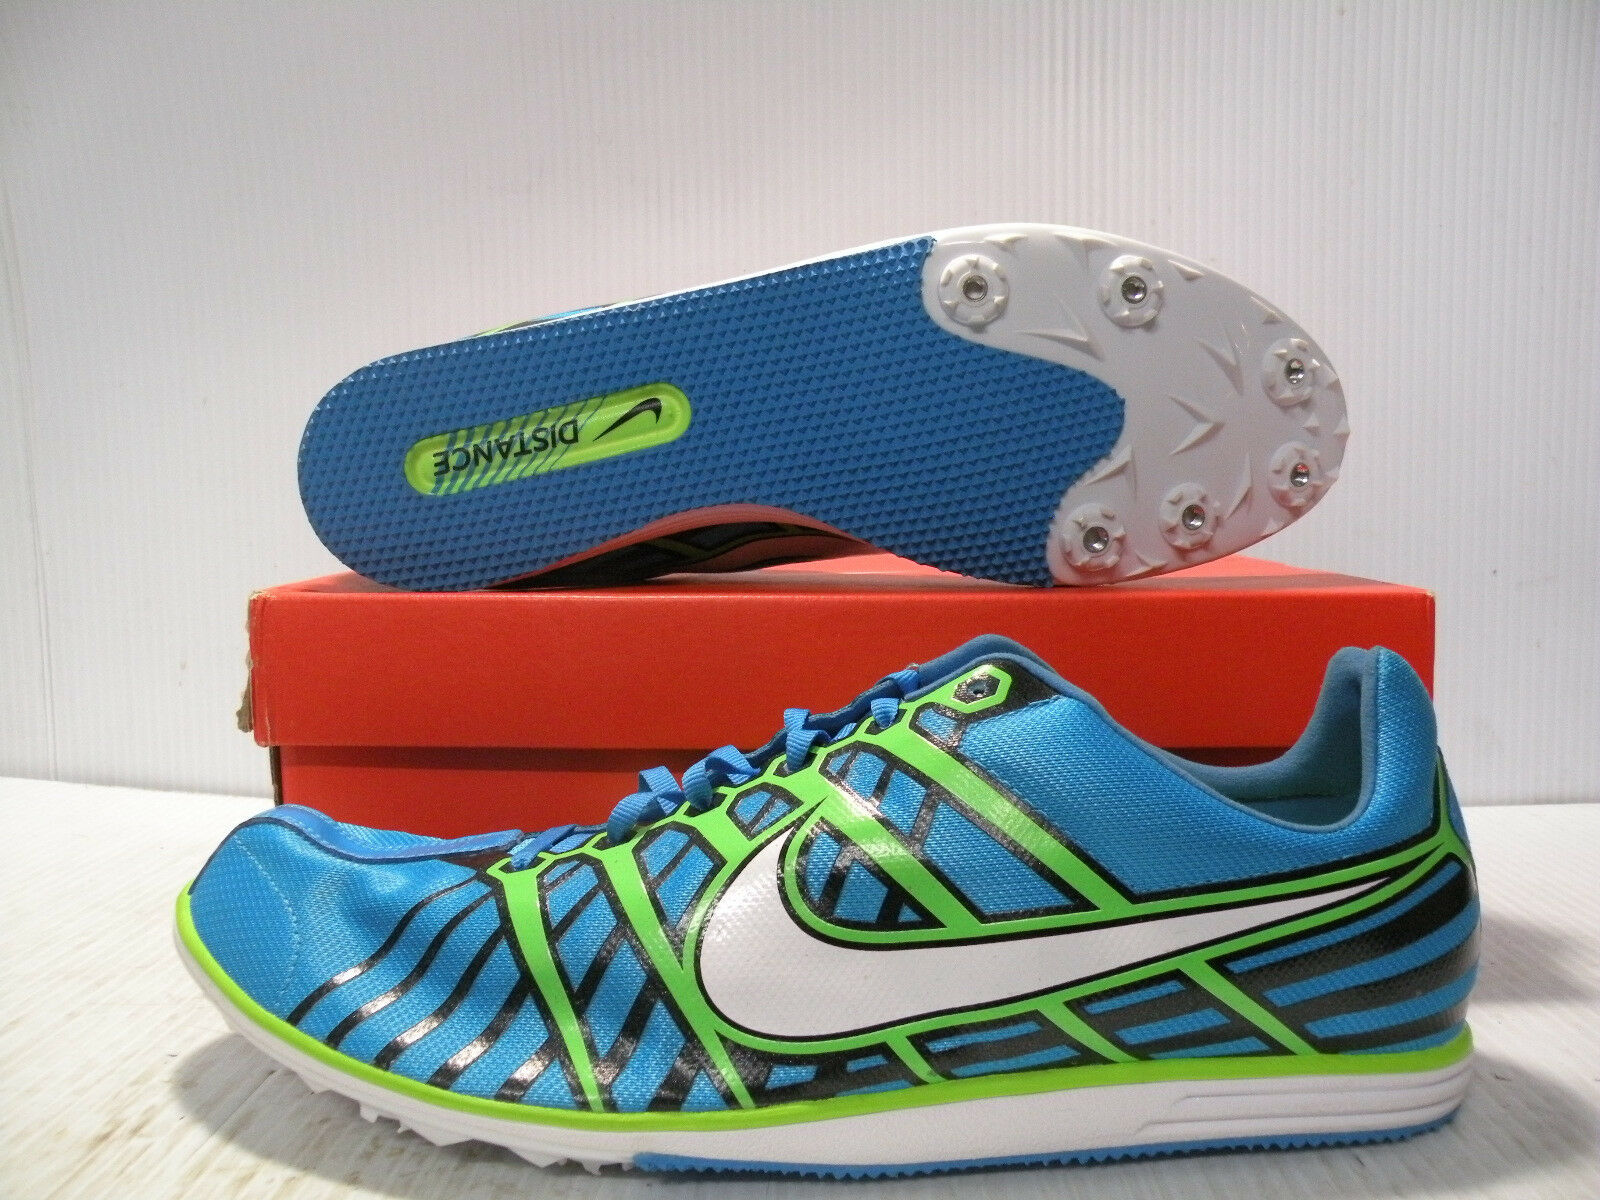 NIKE ZOOM RIVAL D 6 RUNNING SPIKES MEN SHOES blueE GREEN 468649-413 SIZE 14 NEW